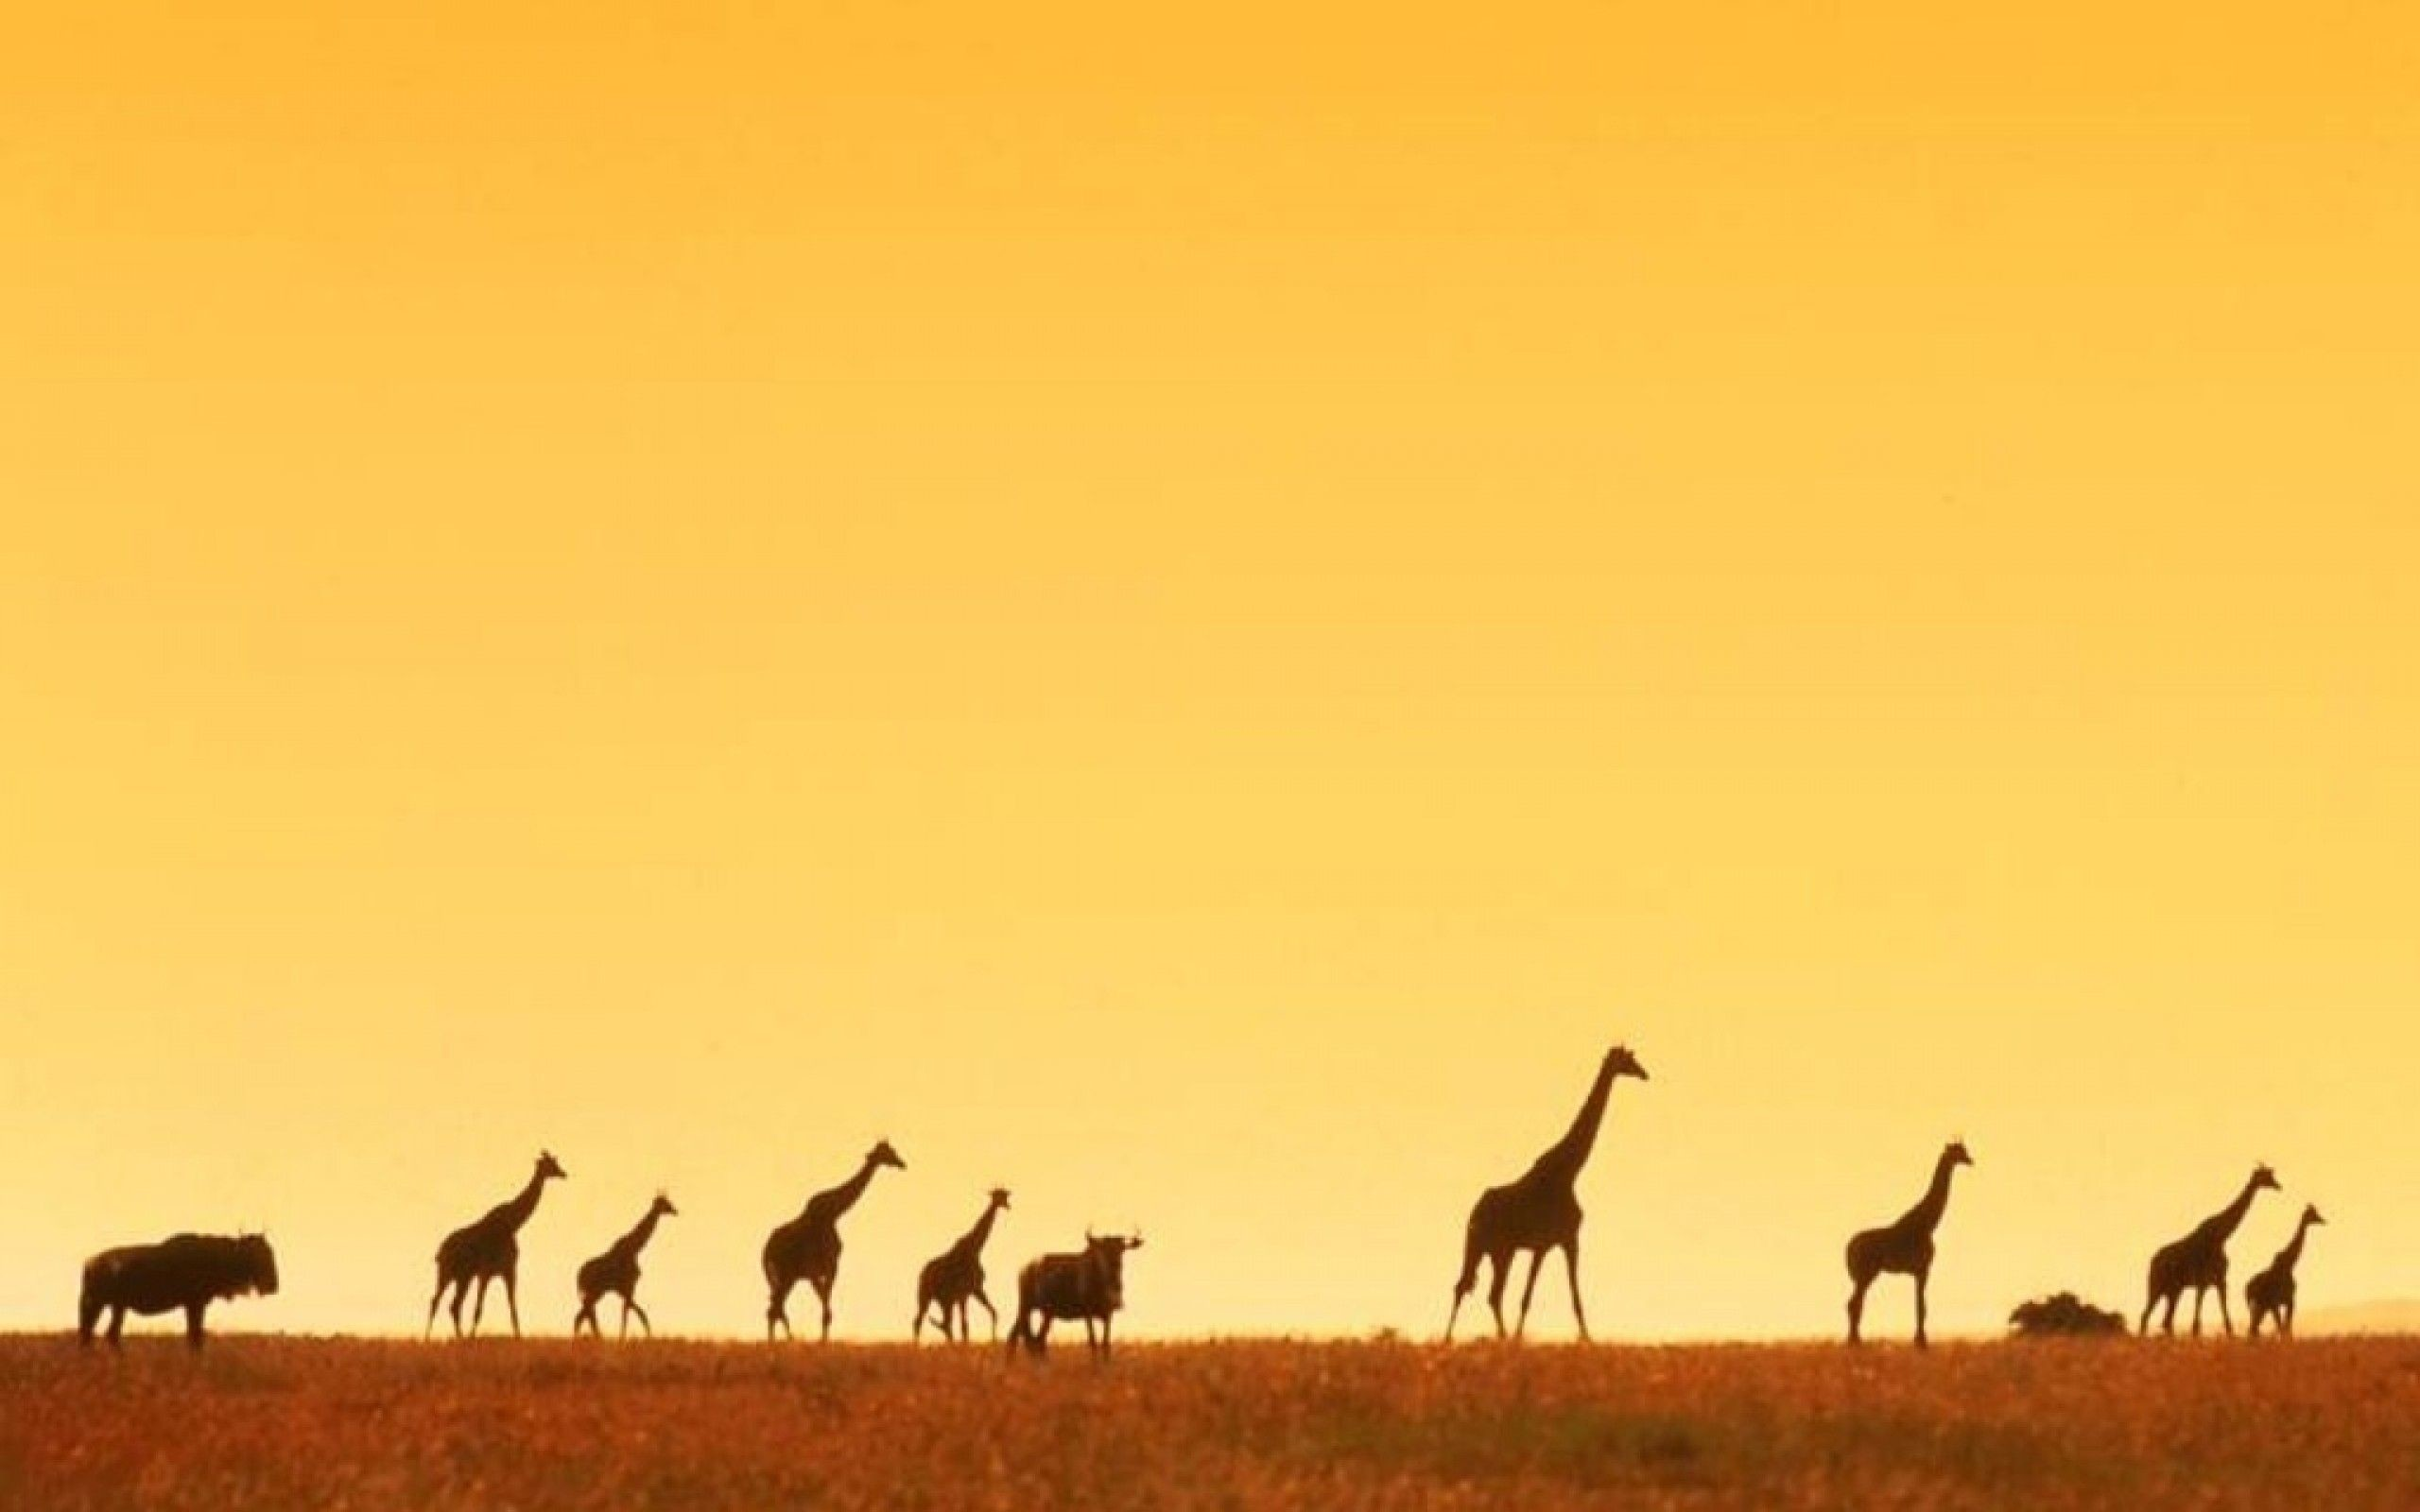 2560x1600 Giraffe Sunset Wallpaper Background with High Definition Wallpaper  Resolution  px 126.57 KB Animal Sunset Cute